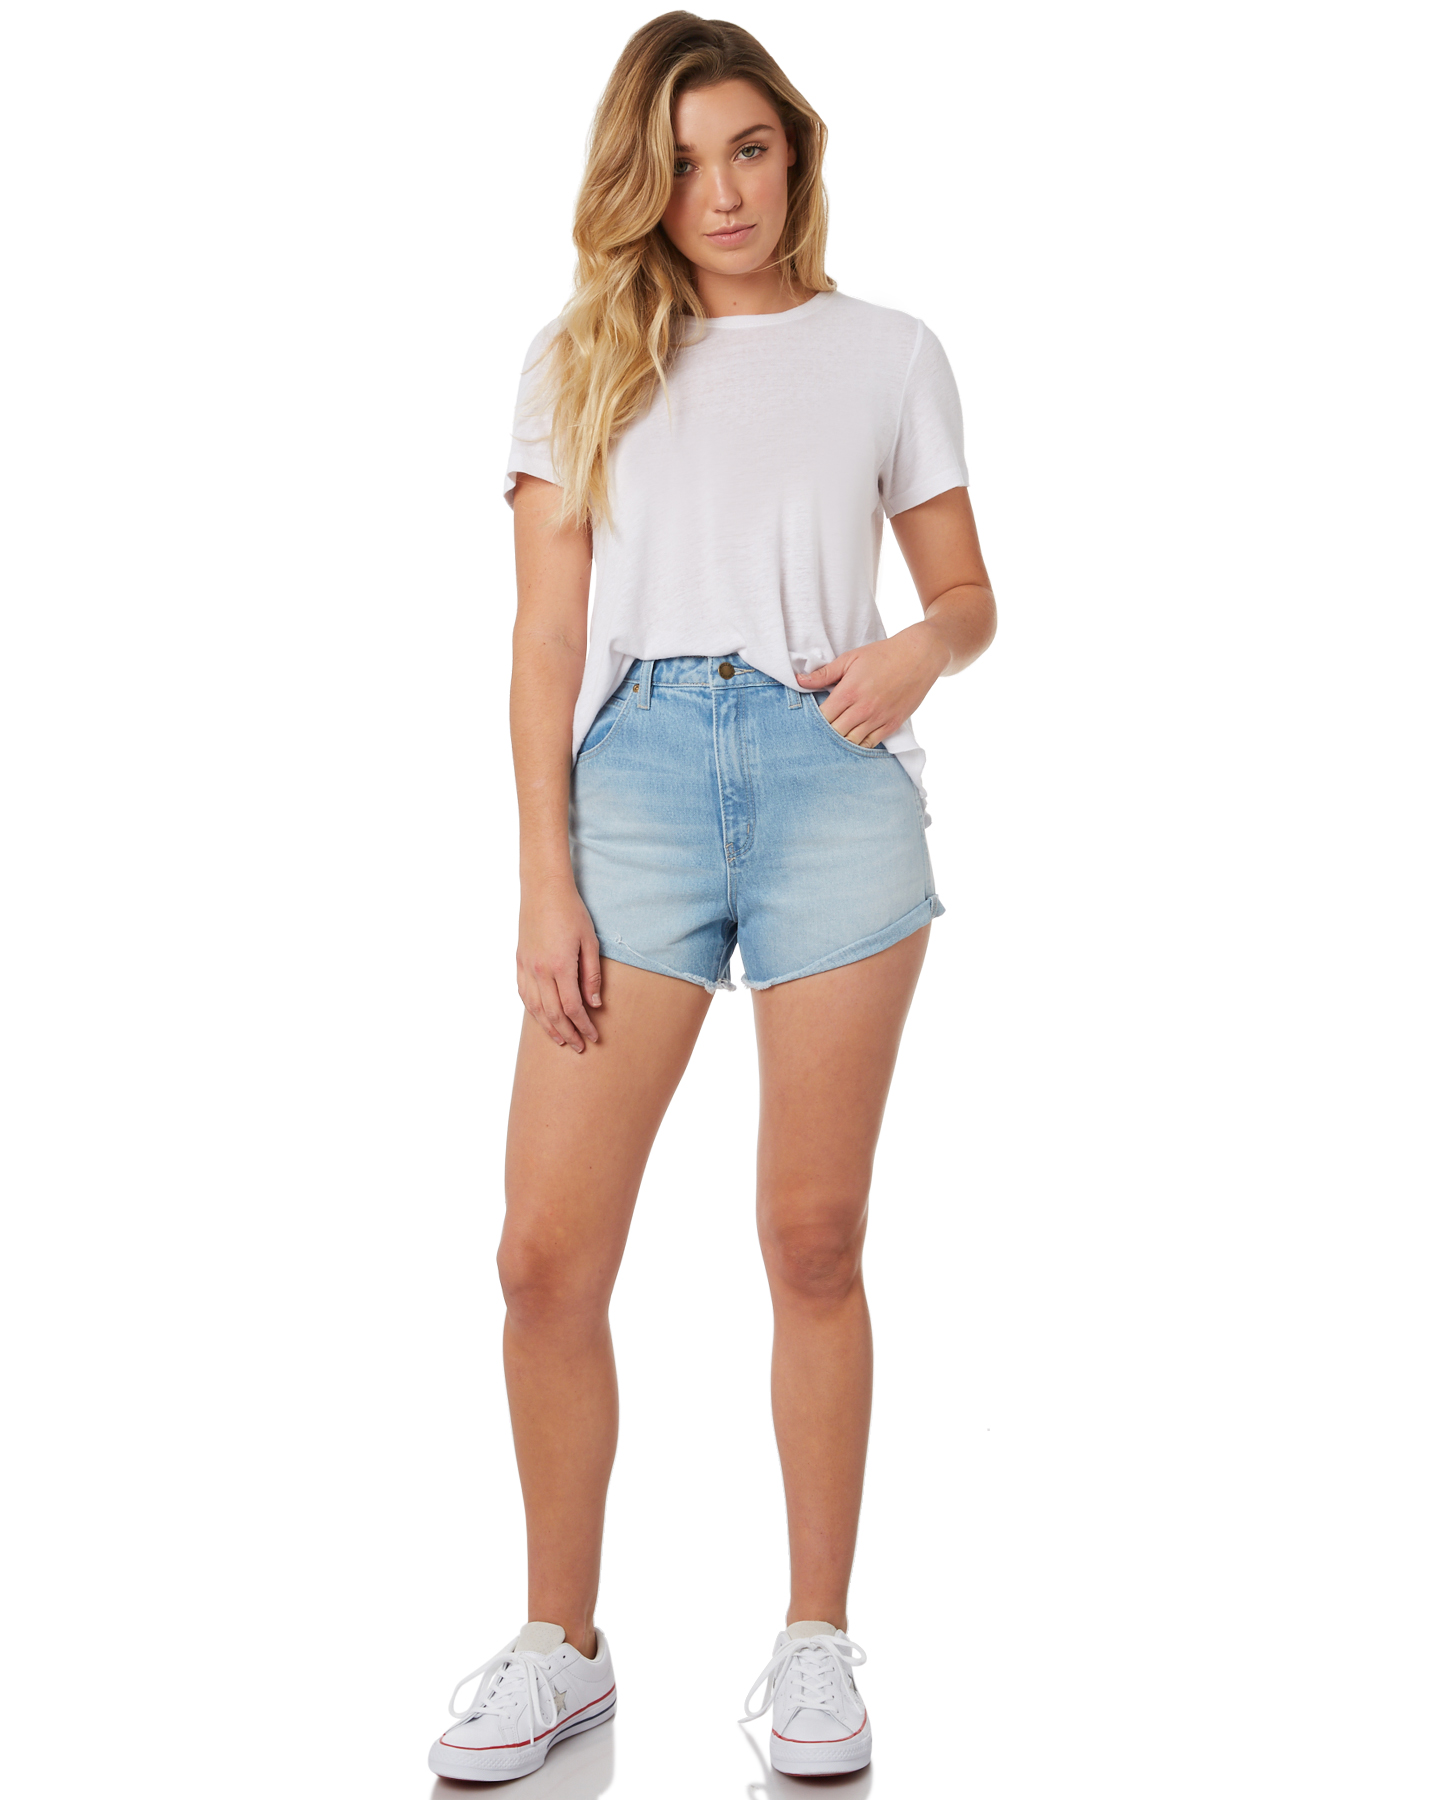 833aabe9961 Details about New Rollas Women's Dusters Womens Shorts Cotton Fitted Blue